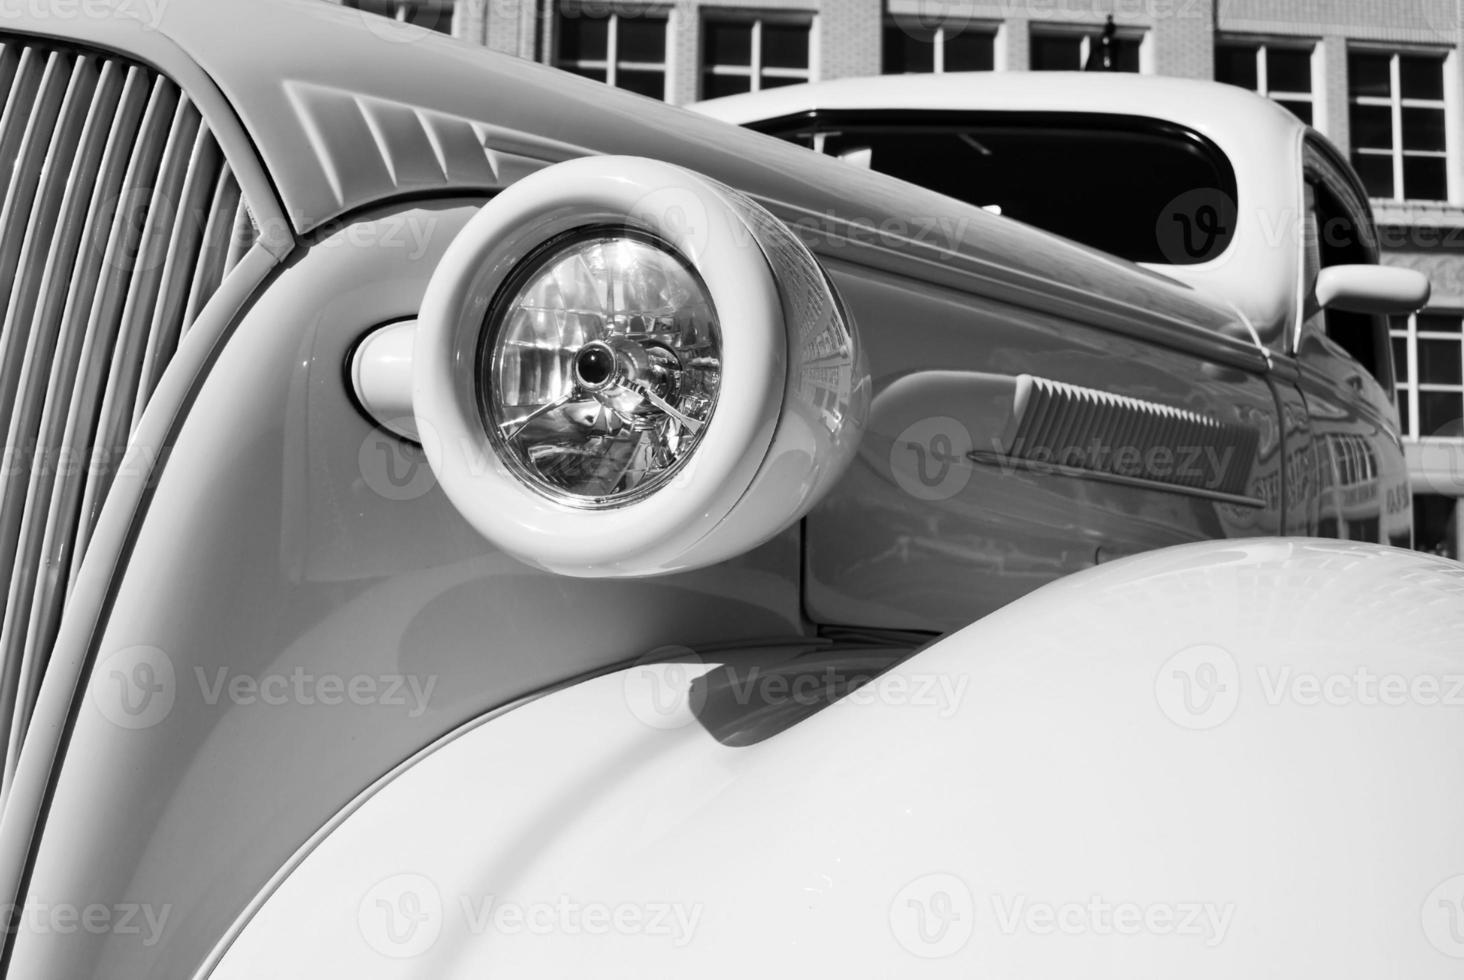 Chevy sedan hot rod in black and white photo